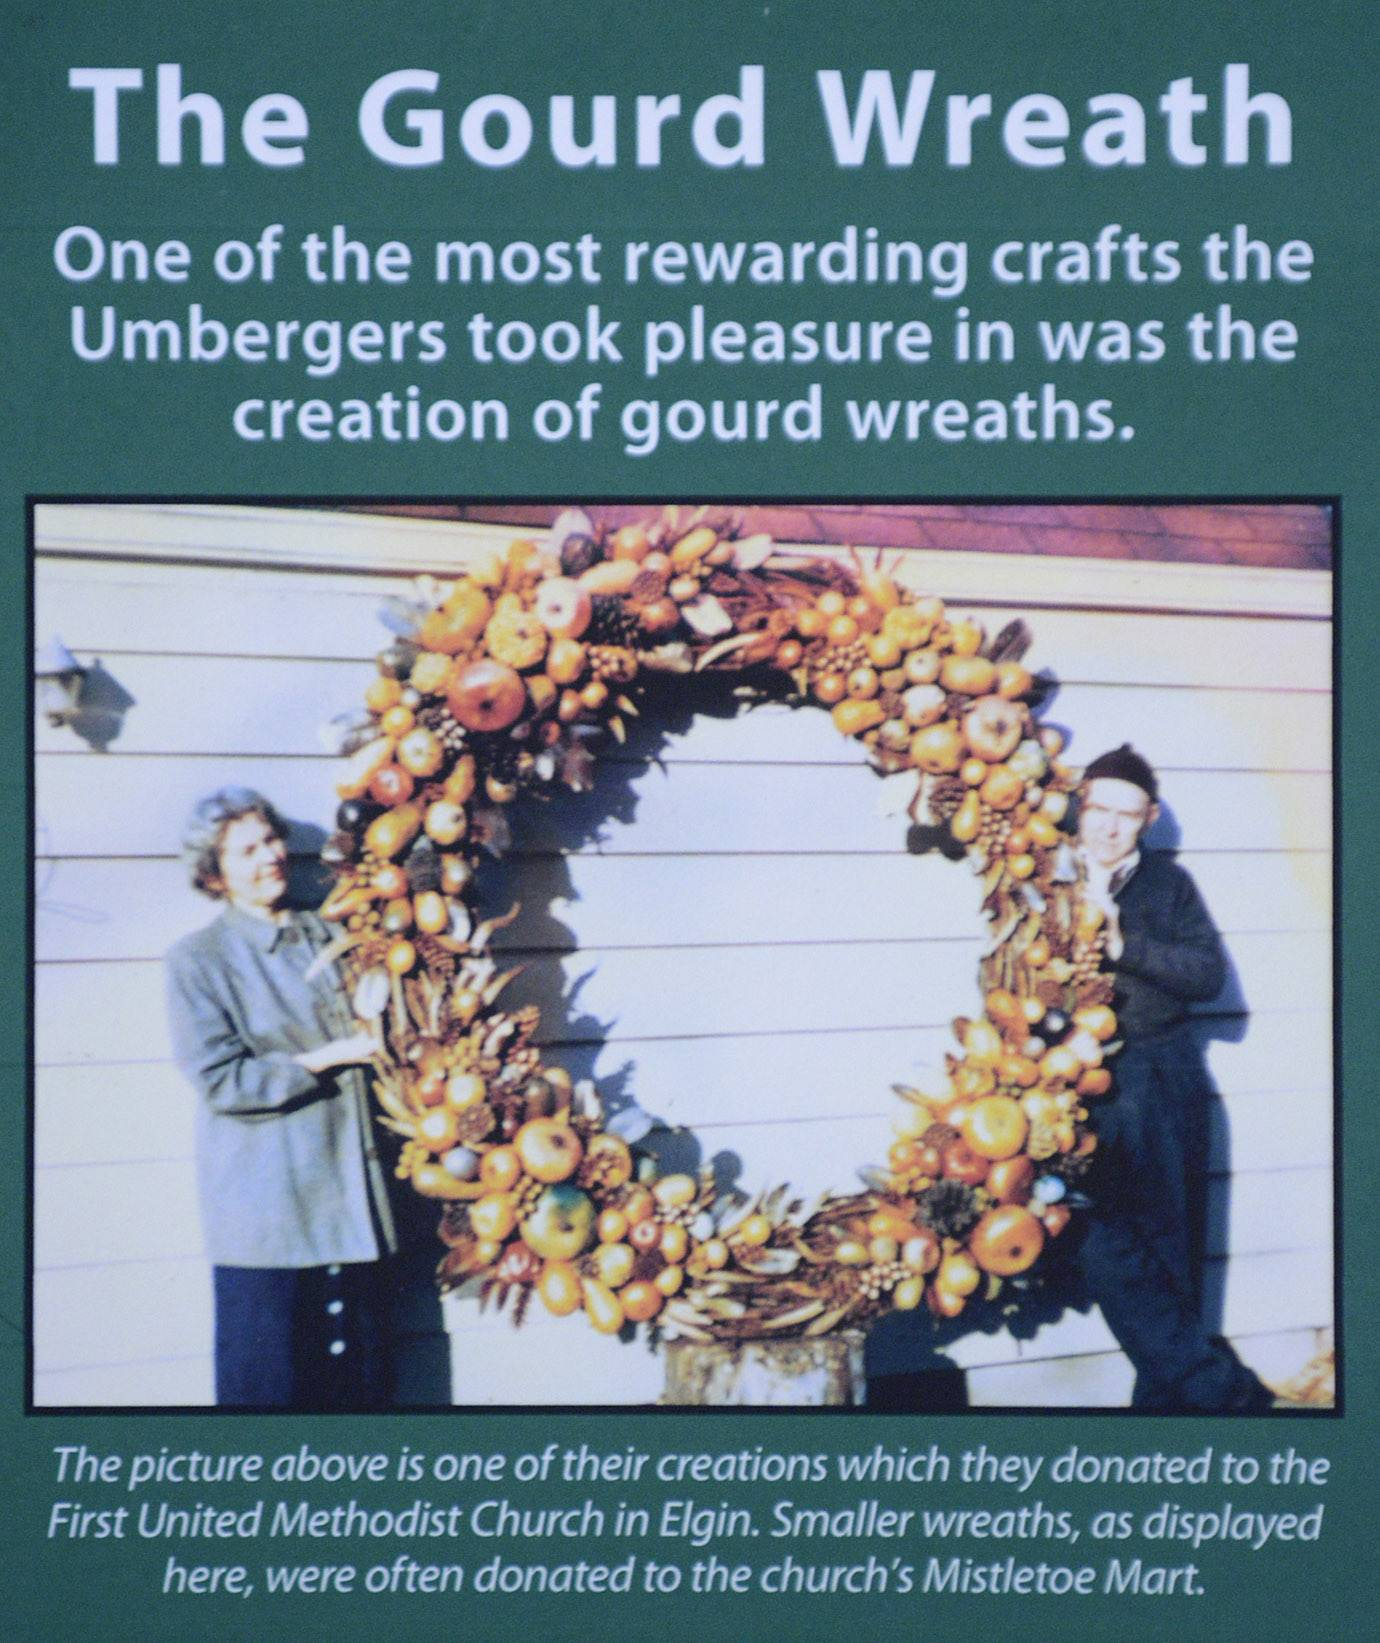 An informational display shows Virginia Umberger of Elgin and her late husband, Alton, with one of their giant gourd wreaths. Virginia, now 104, has part of her collection and gourd creations on display at the Elgin Public Museum.